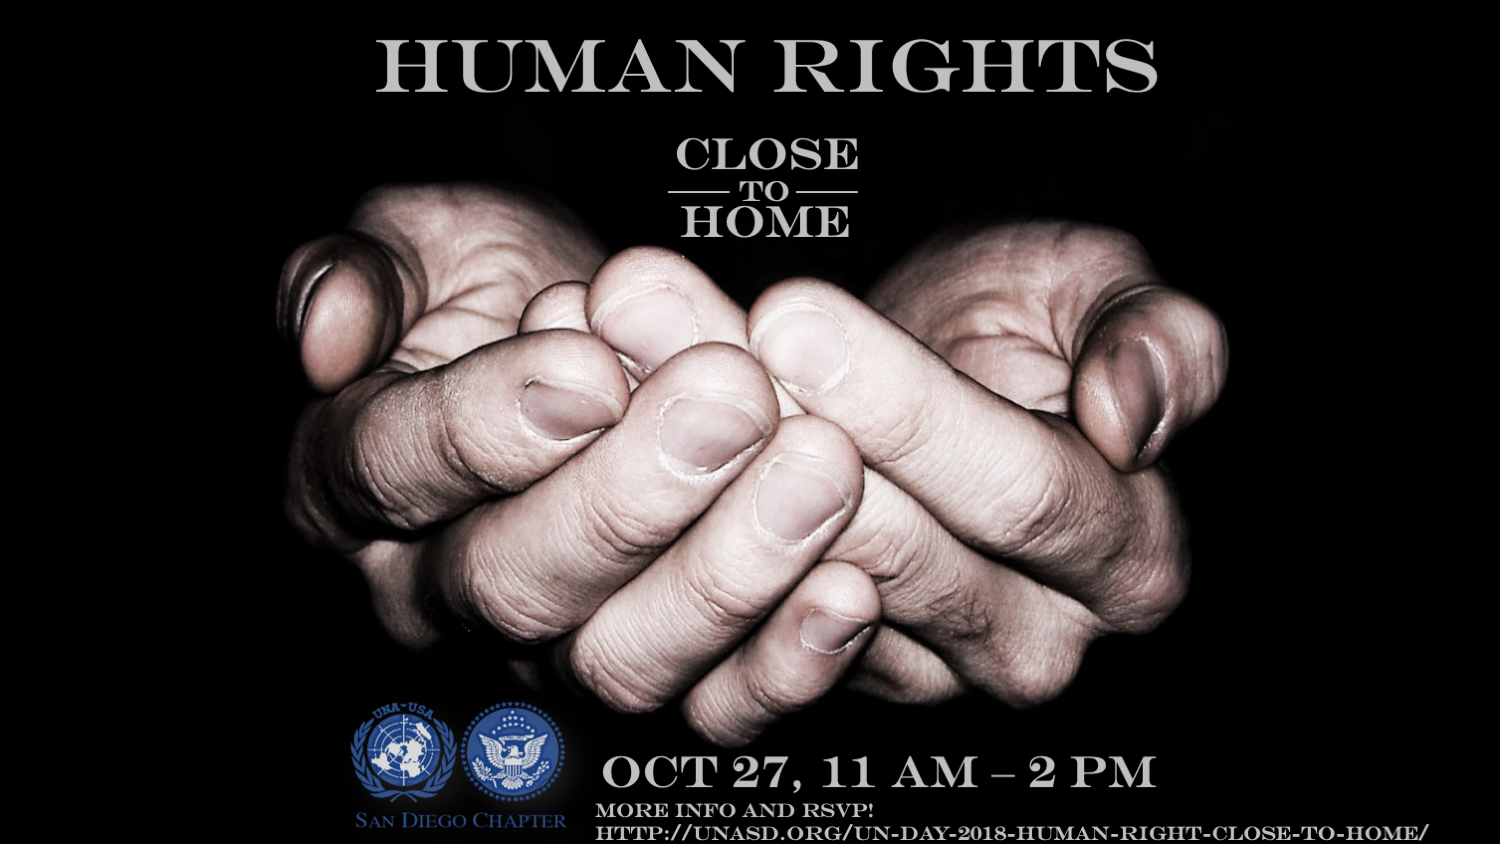 UNA-USA San Diego, Human Rights: Close to Home